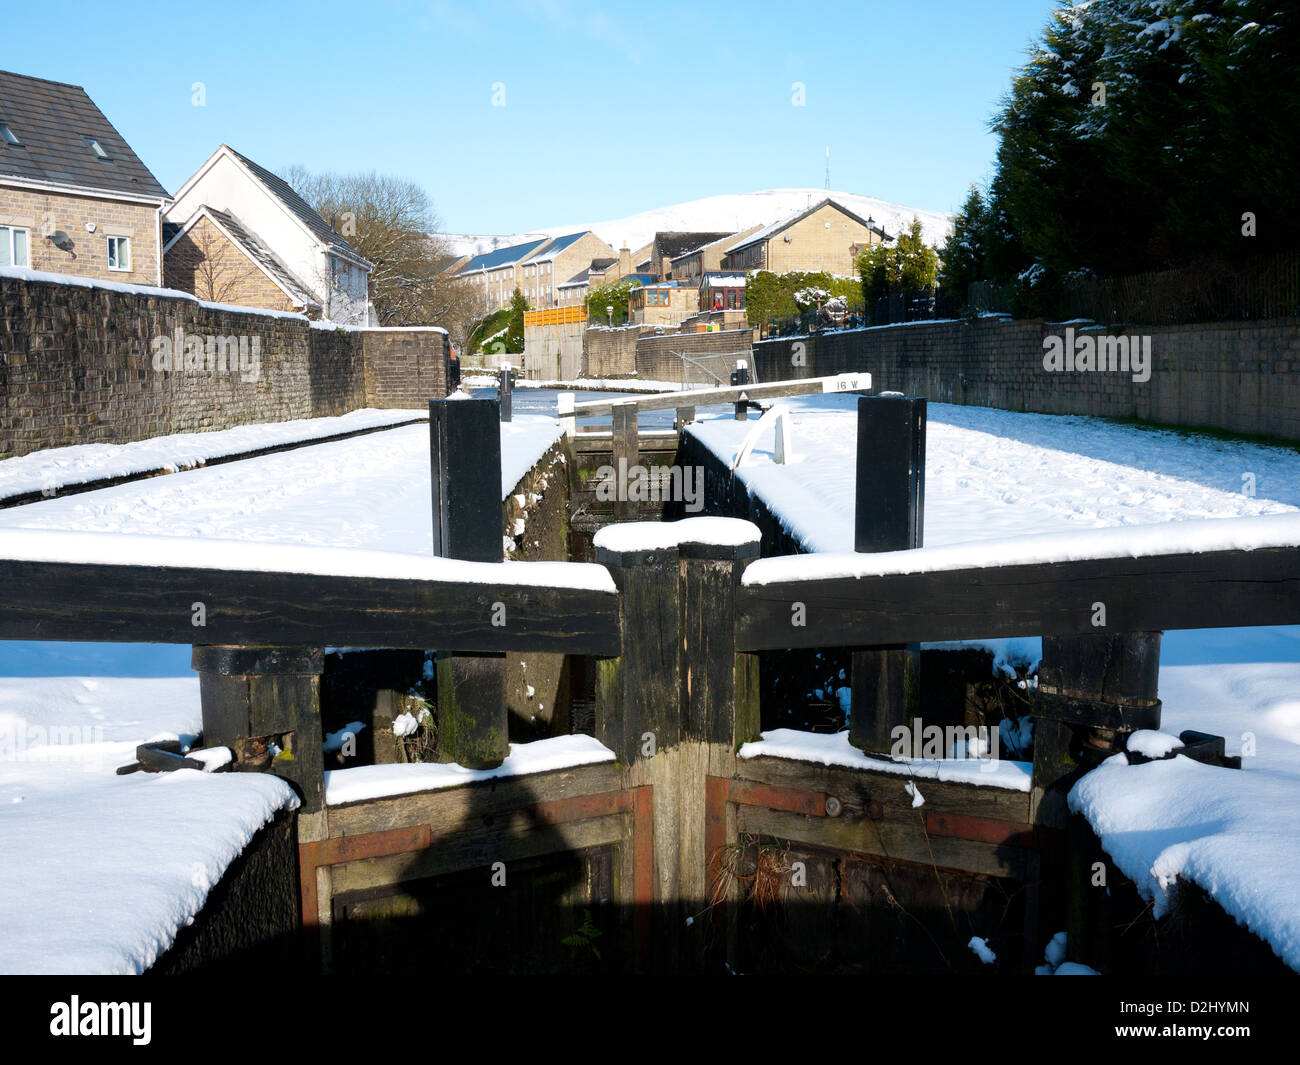 Lock Gates on the Huddersfield Canal, Mossley, Greater Manchester, UK. - Stock Image